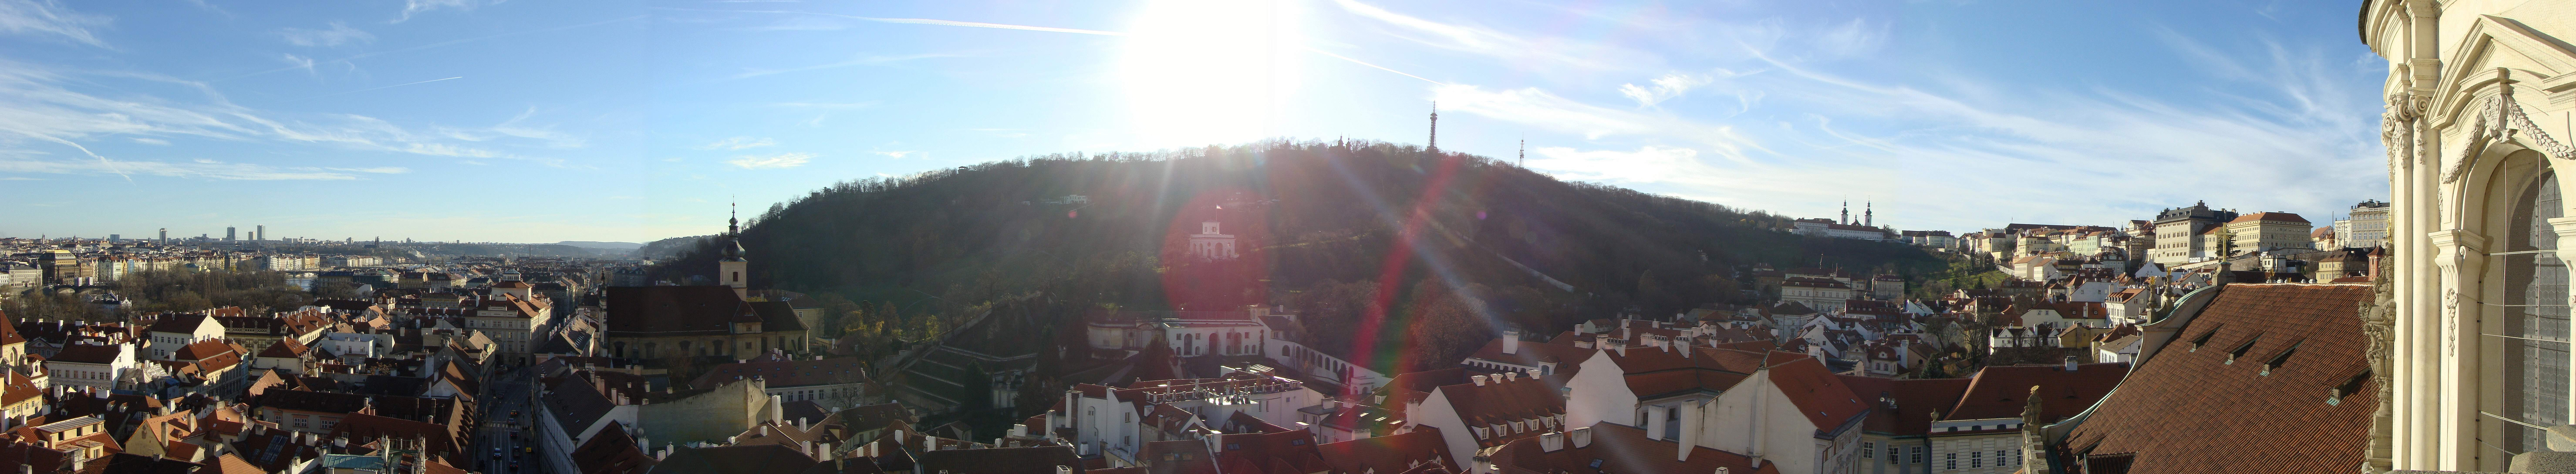 238-prague-panorama-from-national-theatre-to-strahovsky-klaster-14-11-2010